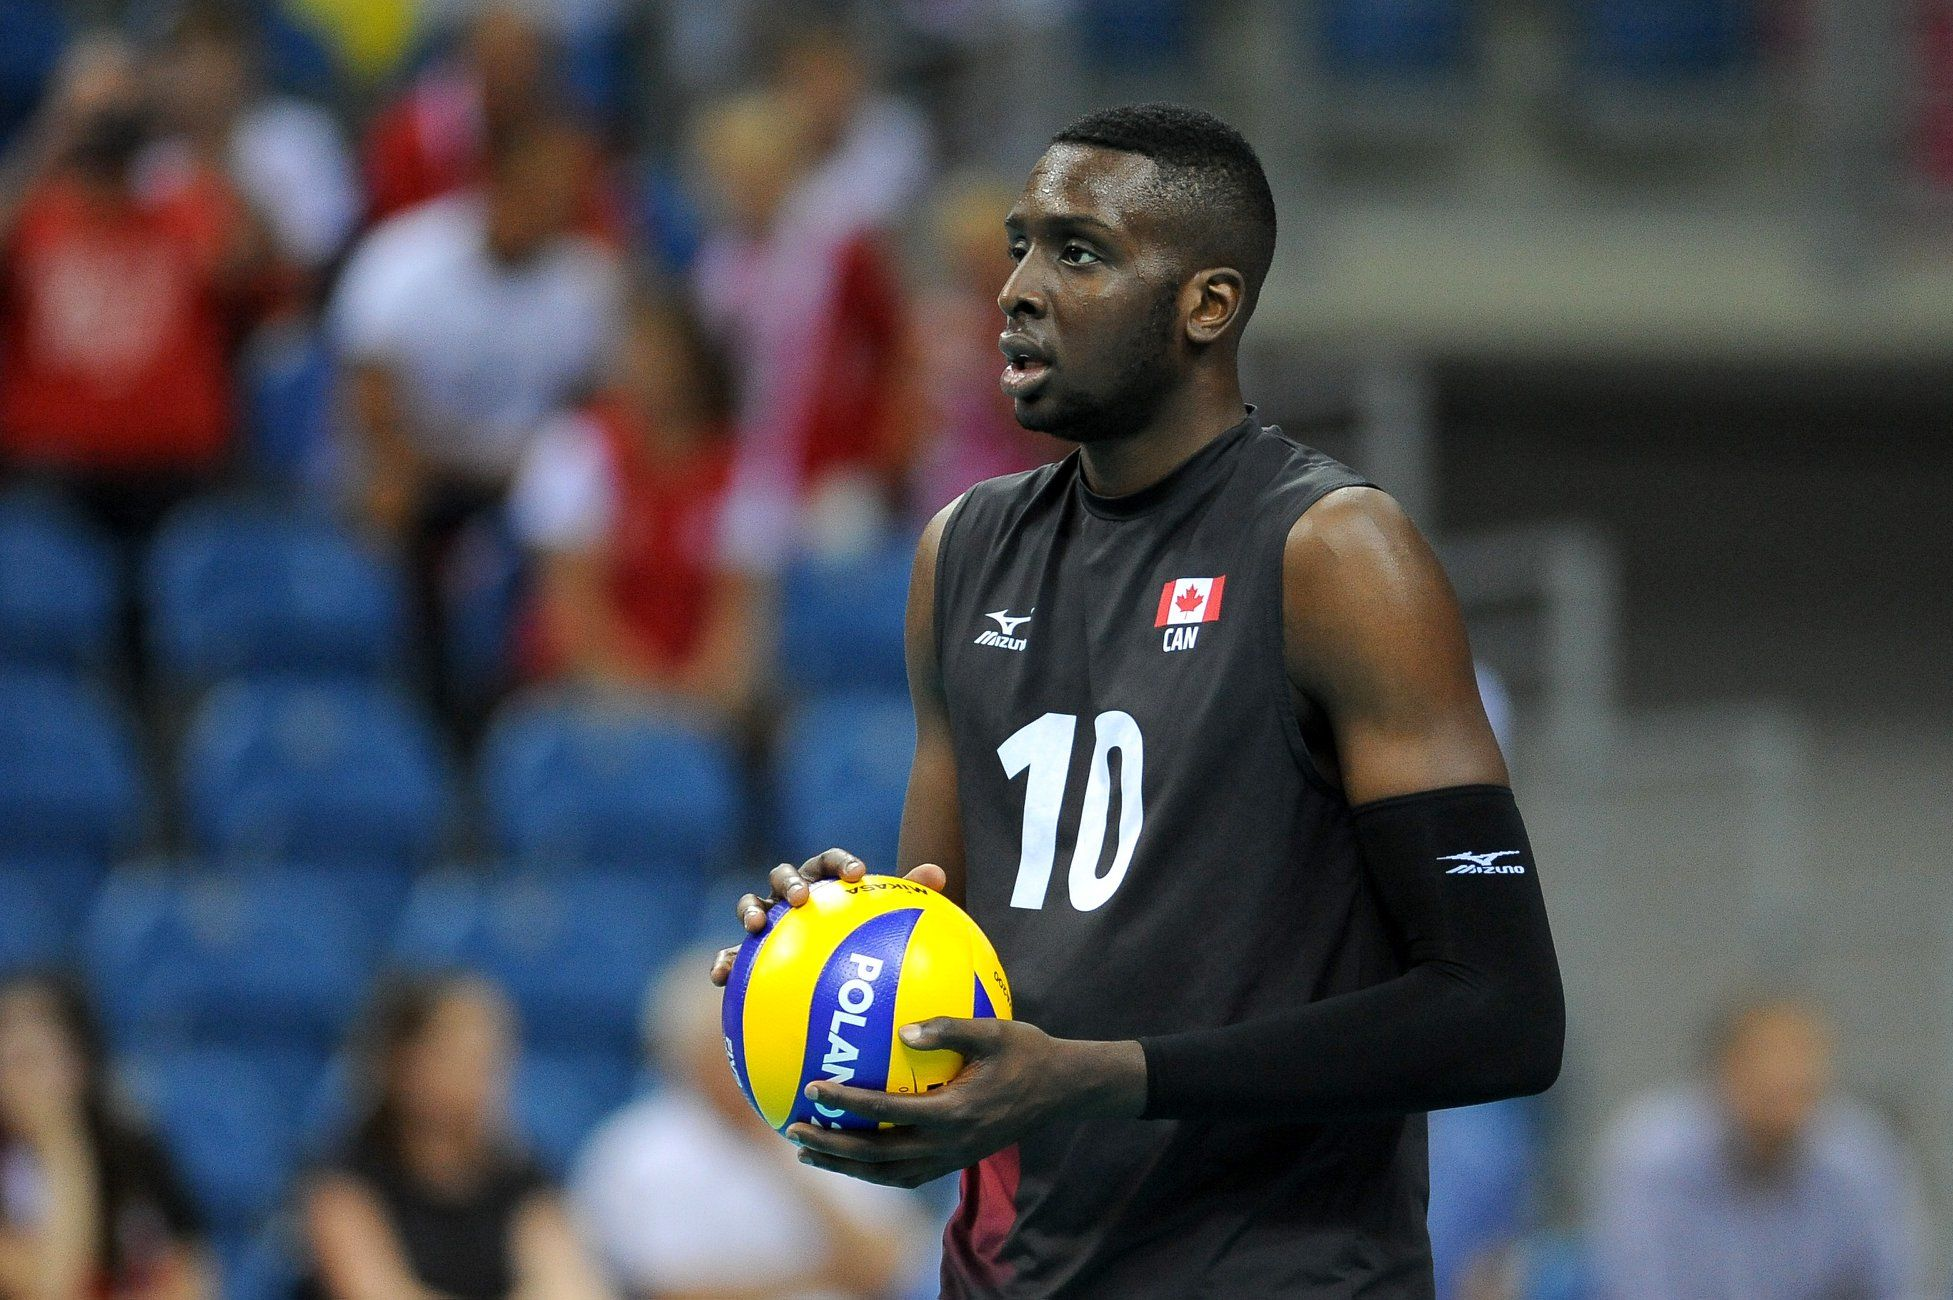 Sharone Vernon-Evans Volleyball Canada National Player